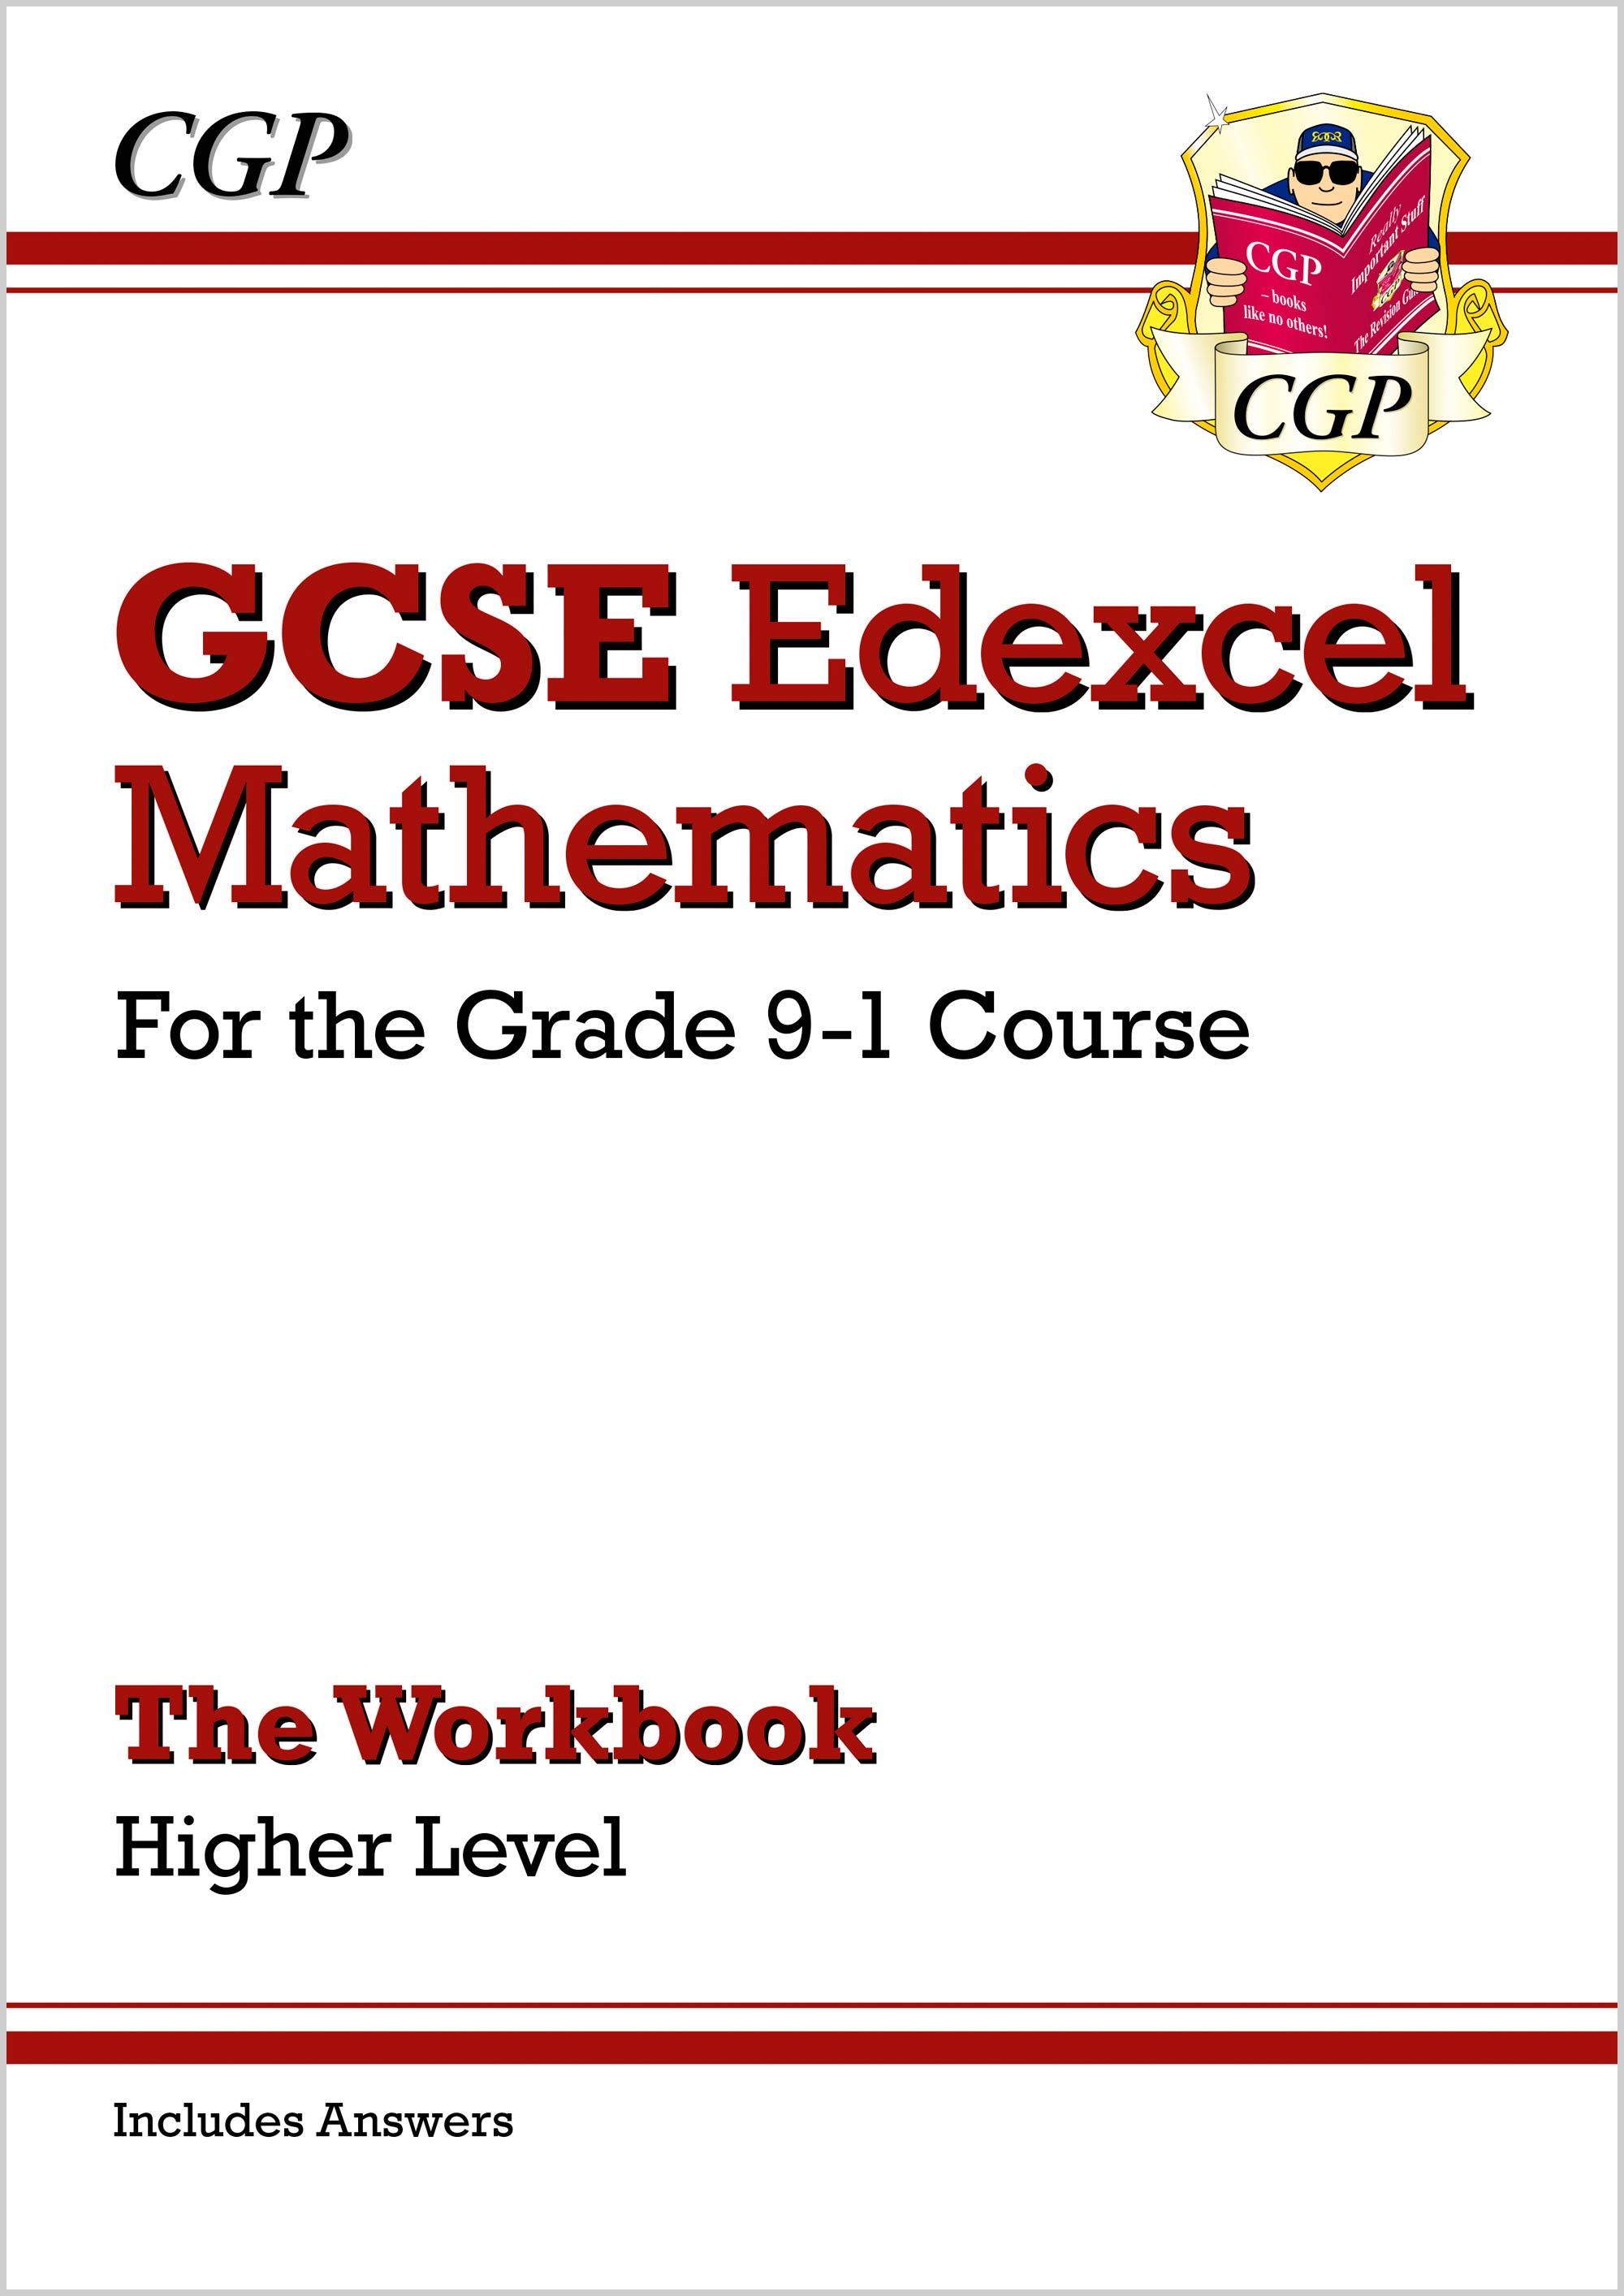 MXHW46BDK - GCSE Maths Edexcel Workbook: Higher - for the Grade 9-1 Course (includes Answers)